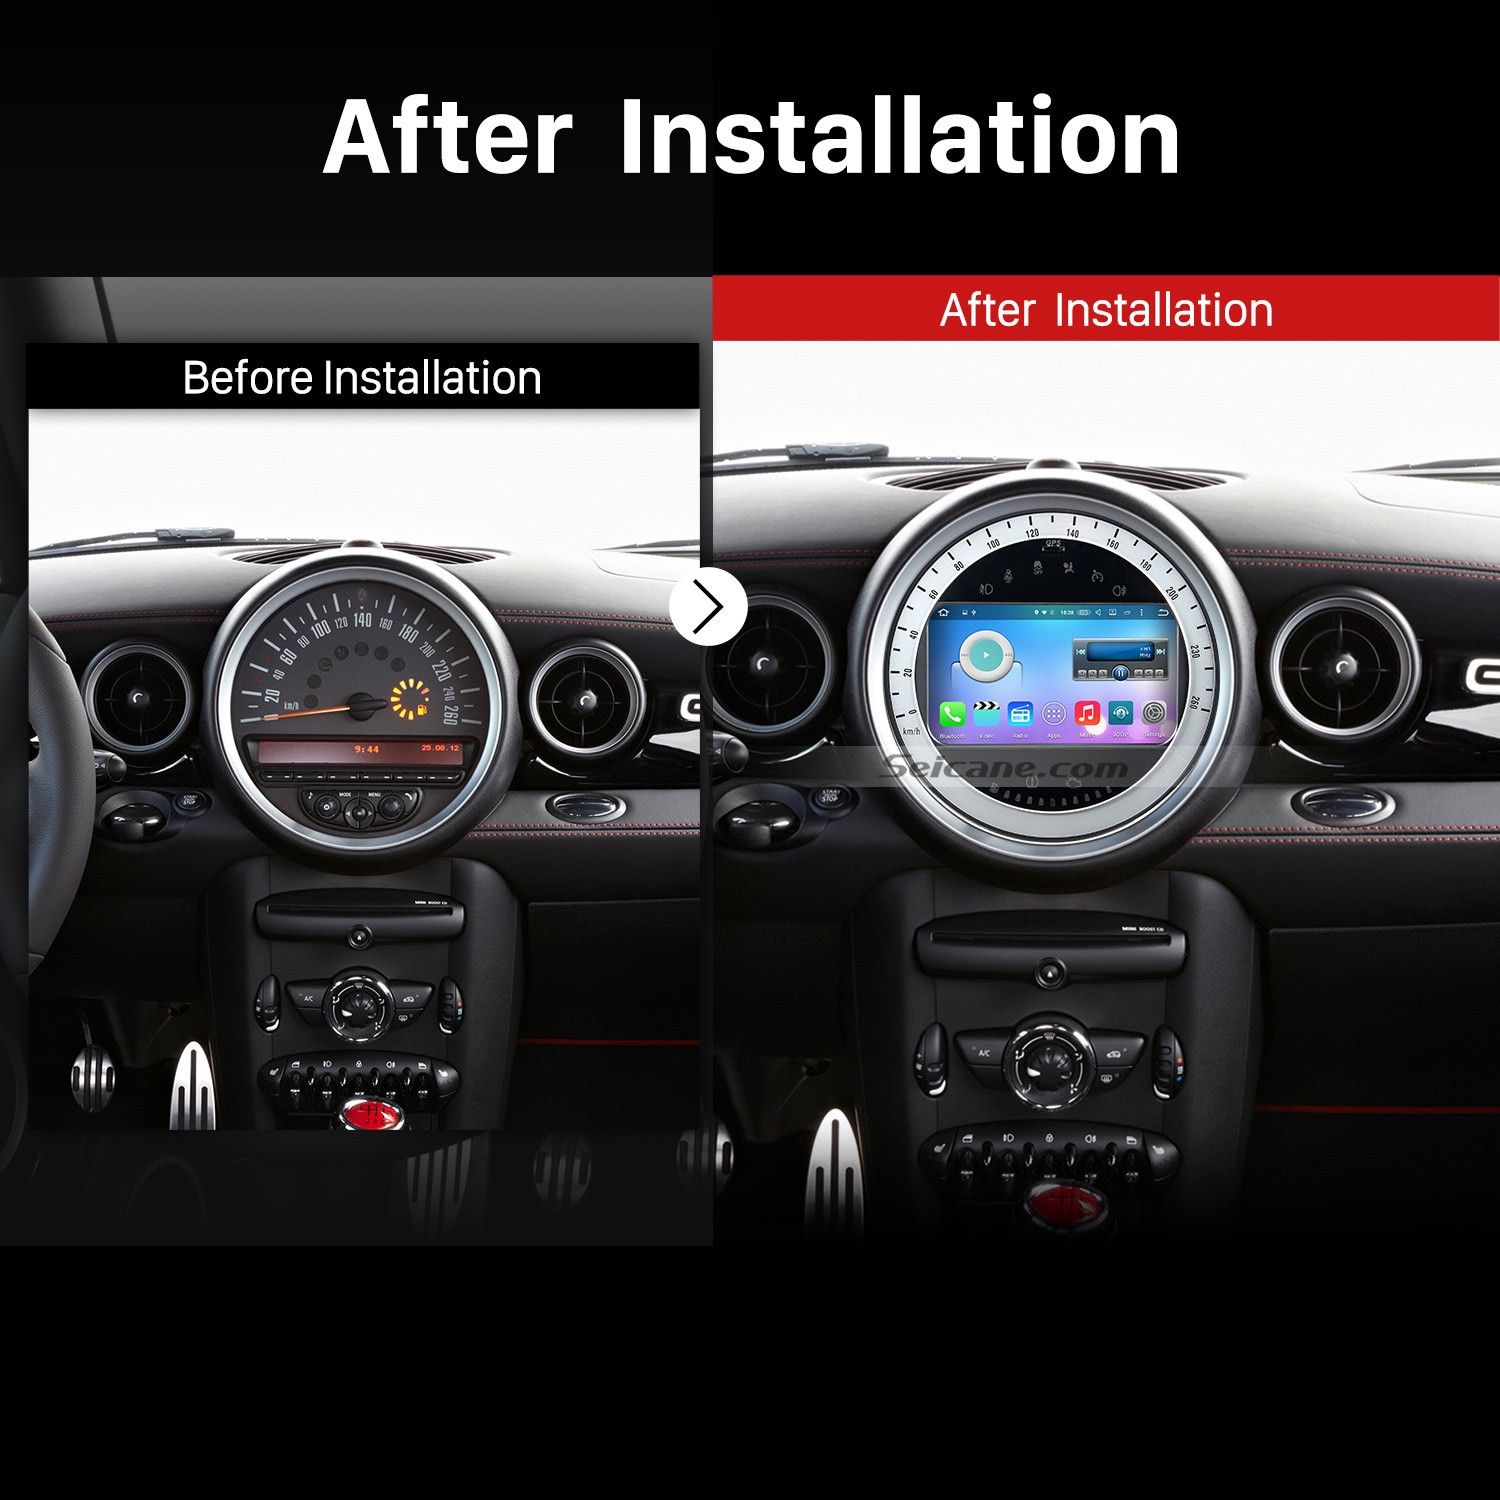 2006 2017 Bmw Mini Cooper Gps Bluetooth Car Stereo After Installation